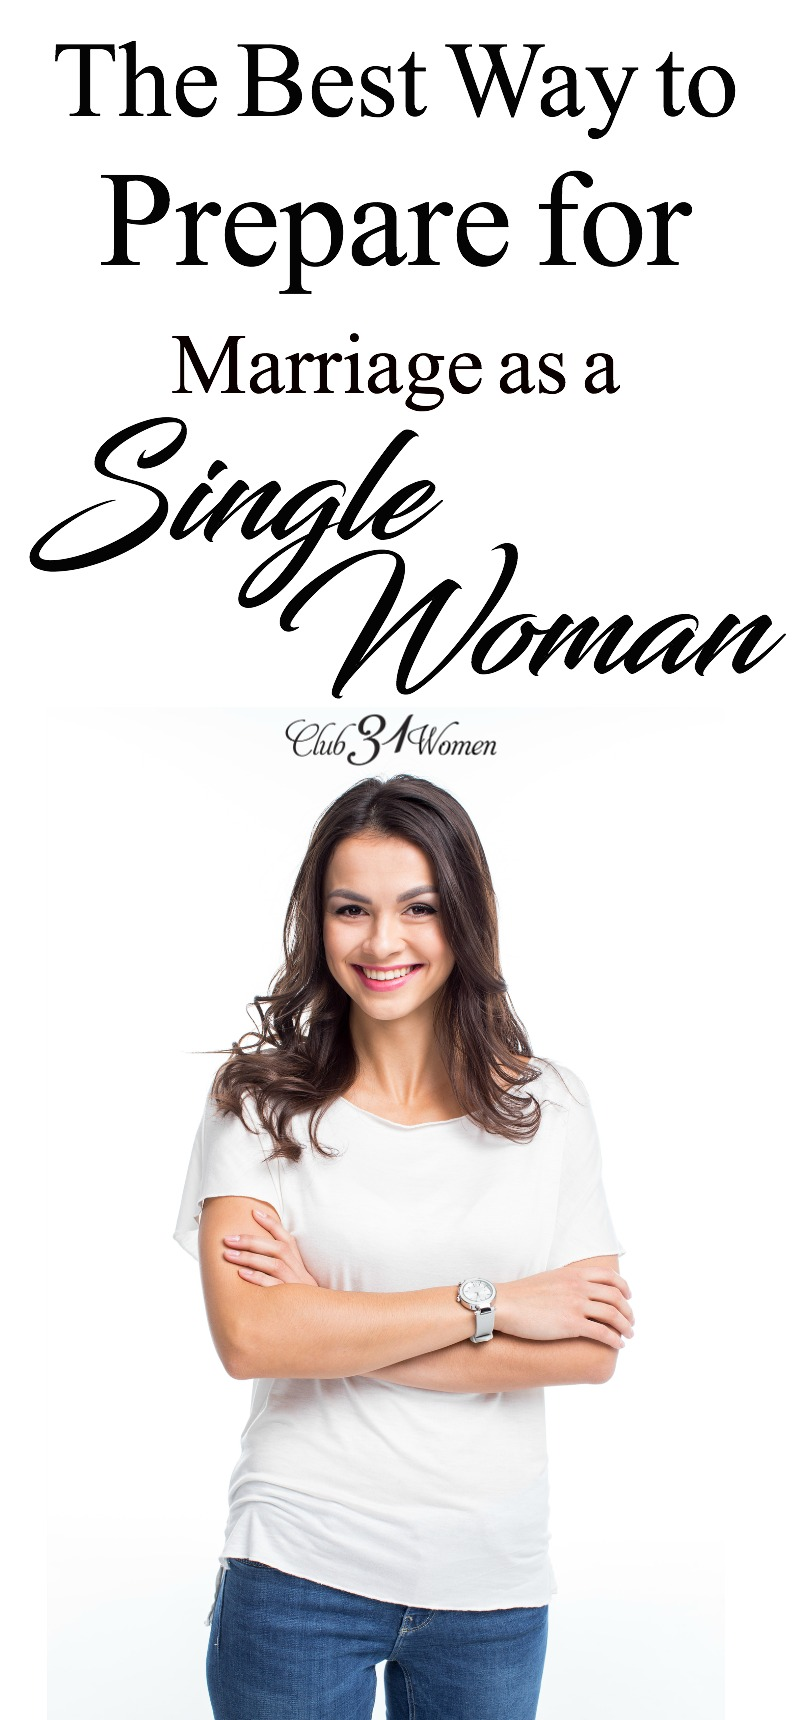 There are some wonderfully fruitful ways to prepare for marriage as a single woman. Preparing now can help you in your marriage later. via @Club31Women